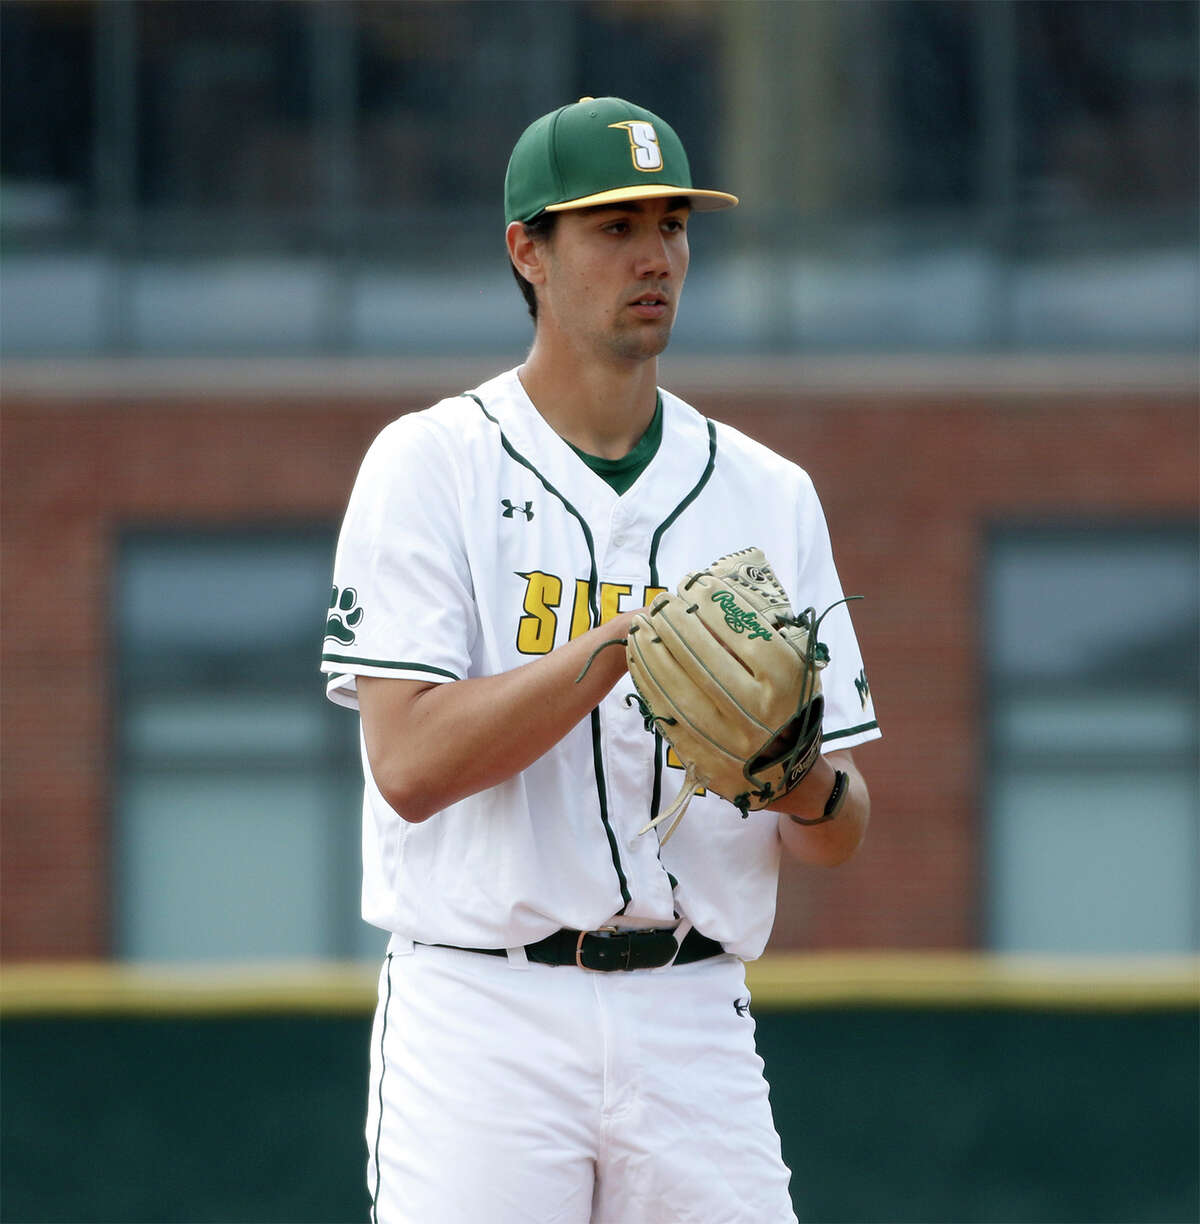 Siena junior pitcher Arlo Marynczak threw a no-hitter in his first career start on Saturday, April 24, 2021.